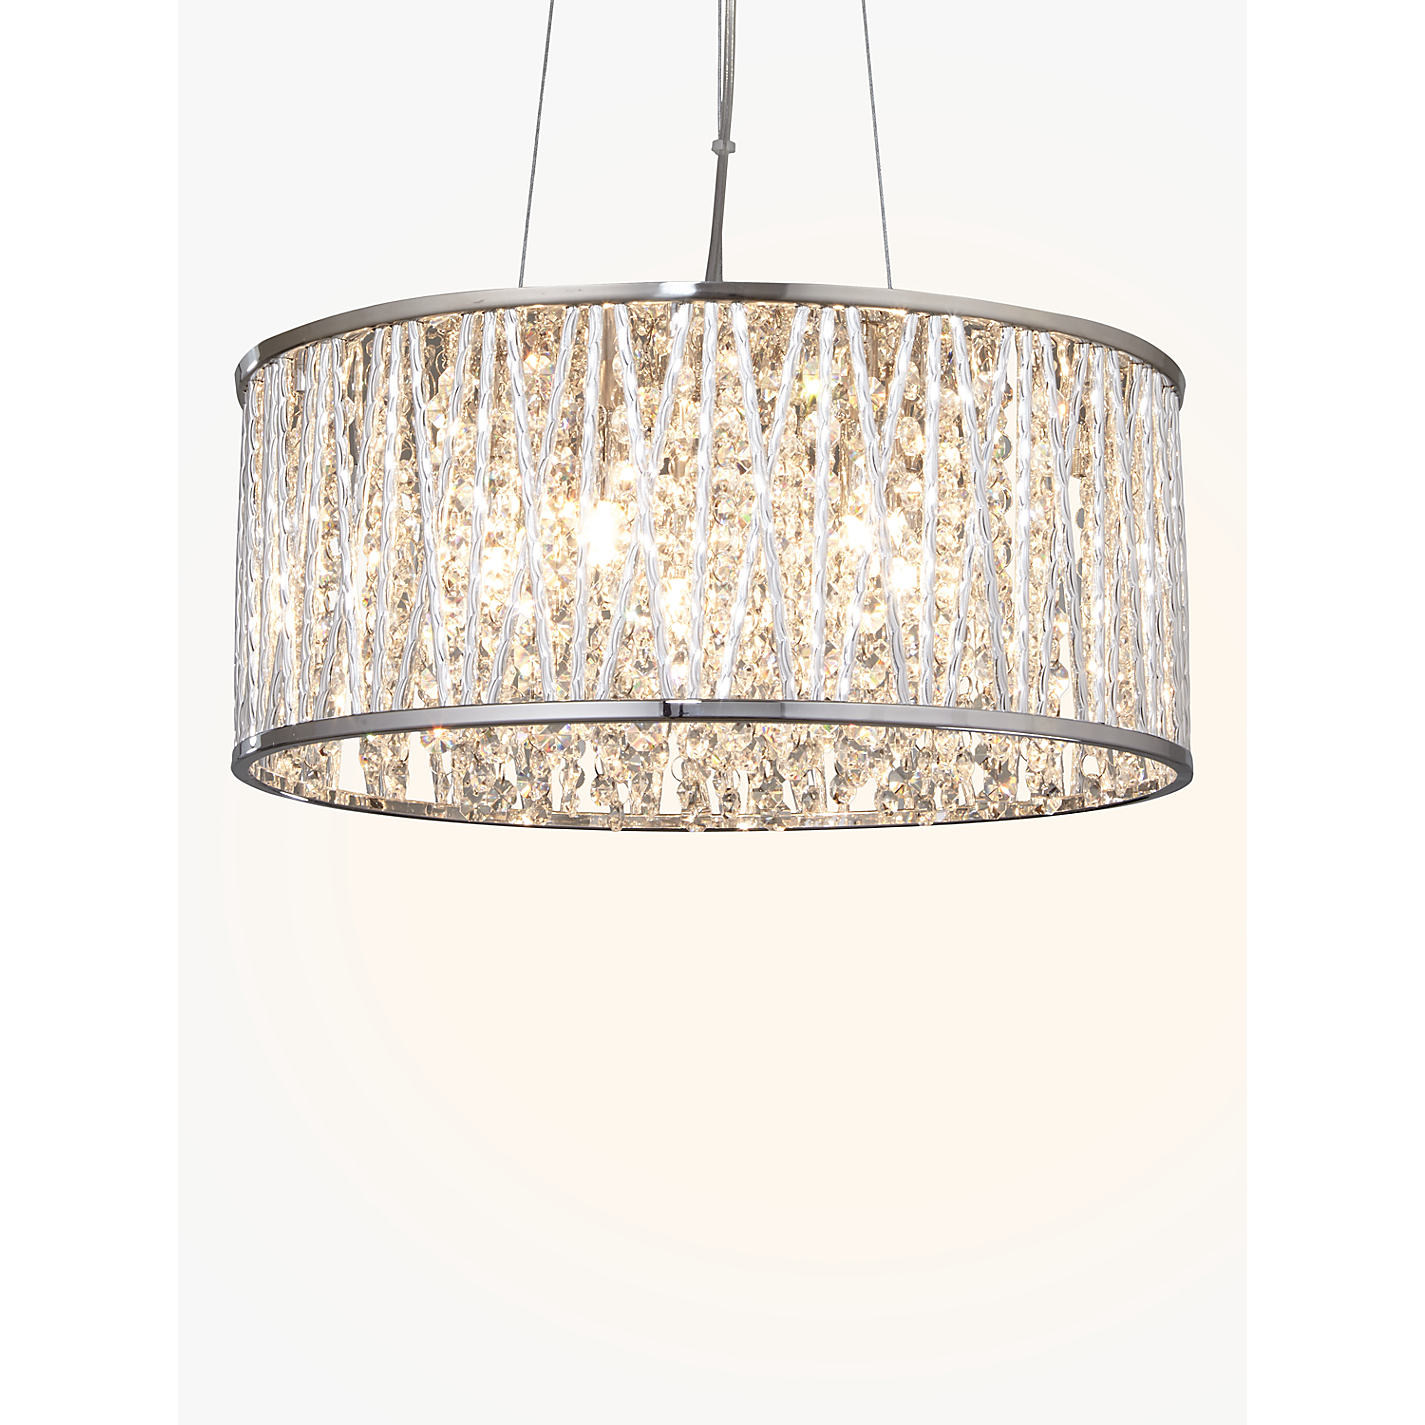 Buy john lewis emilia drum crystal pendant light john lewis buy john lewis emilia drum crystal pendant light online at johnlewis aloadofball Gallery